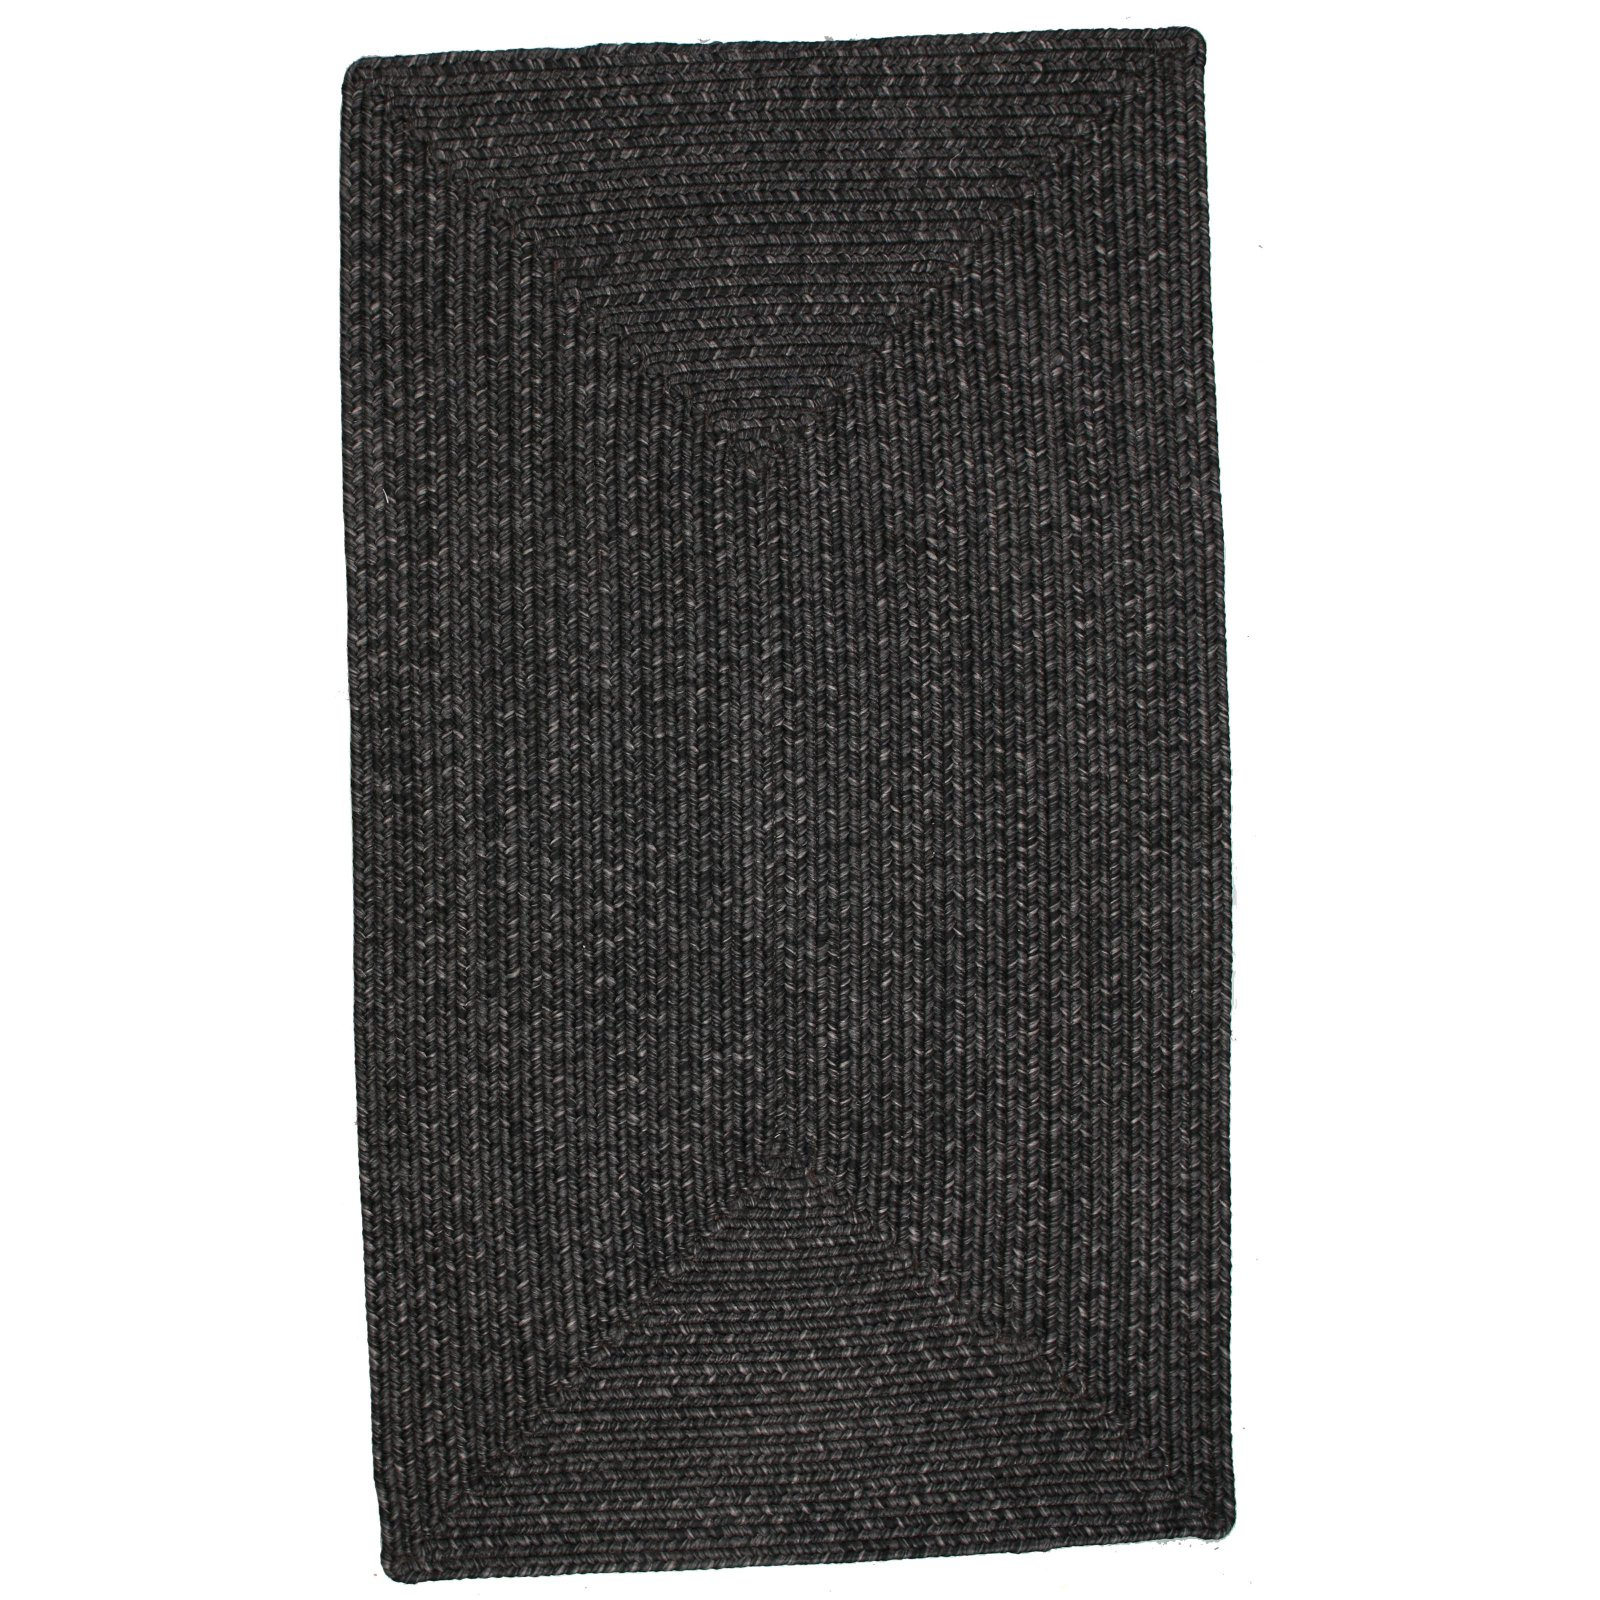 Homespice Decor Out-Durable Indoor/Outdoor Braided Area Rug - Black